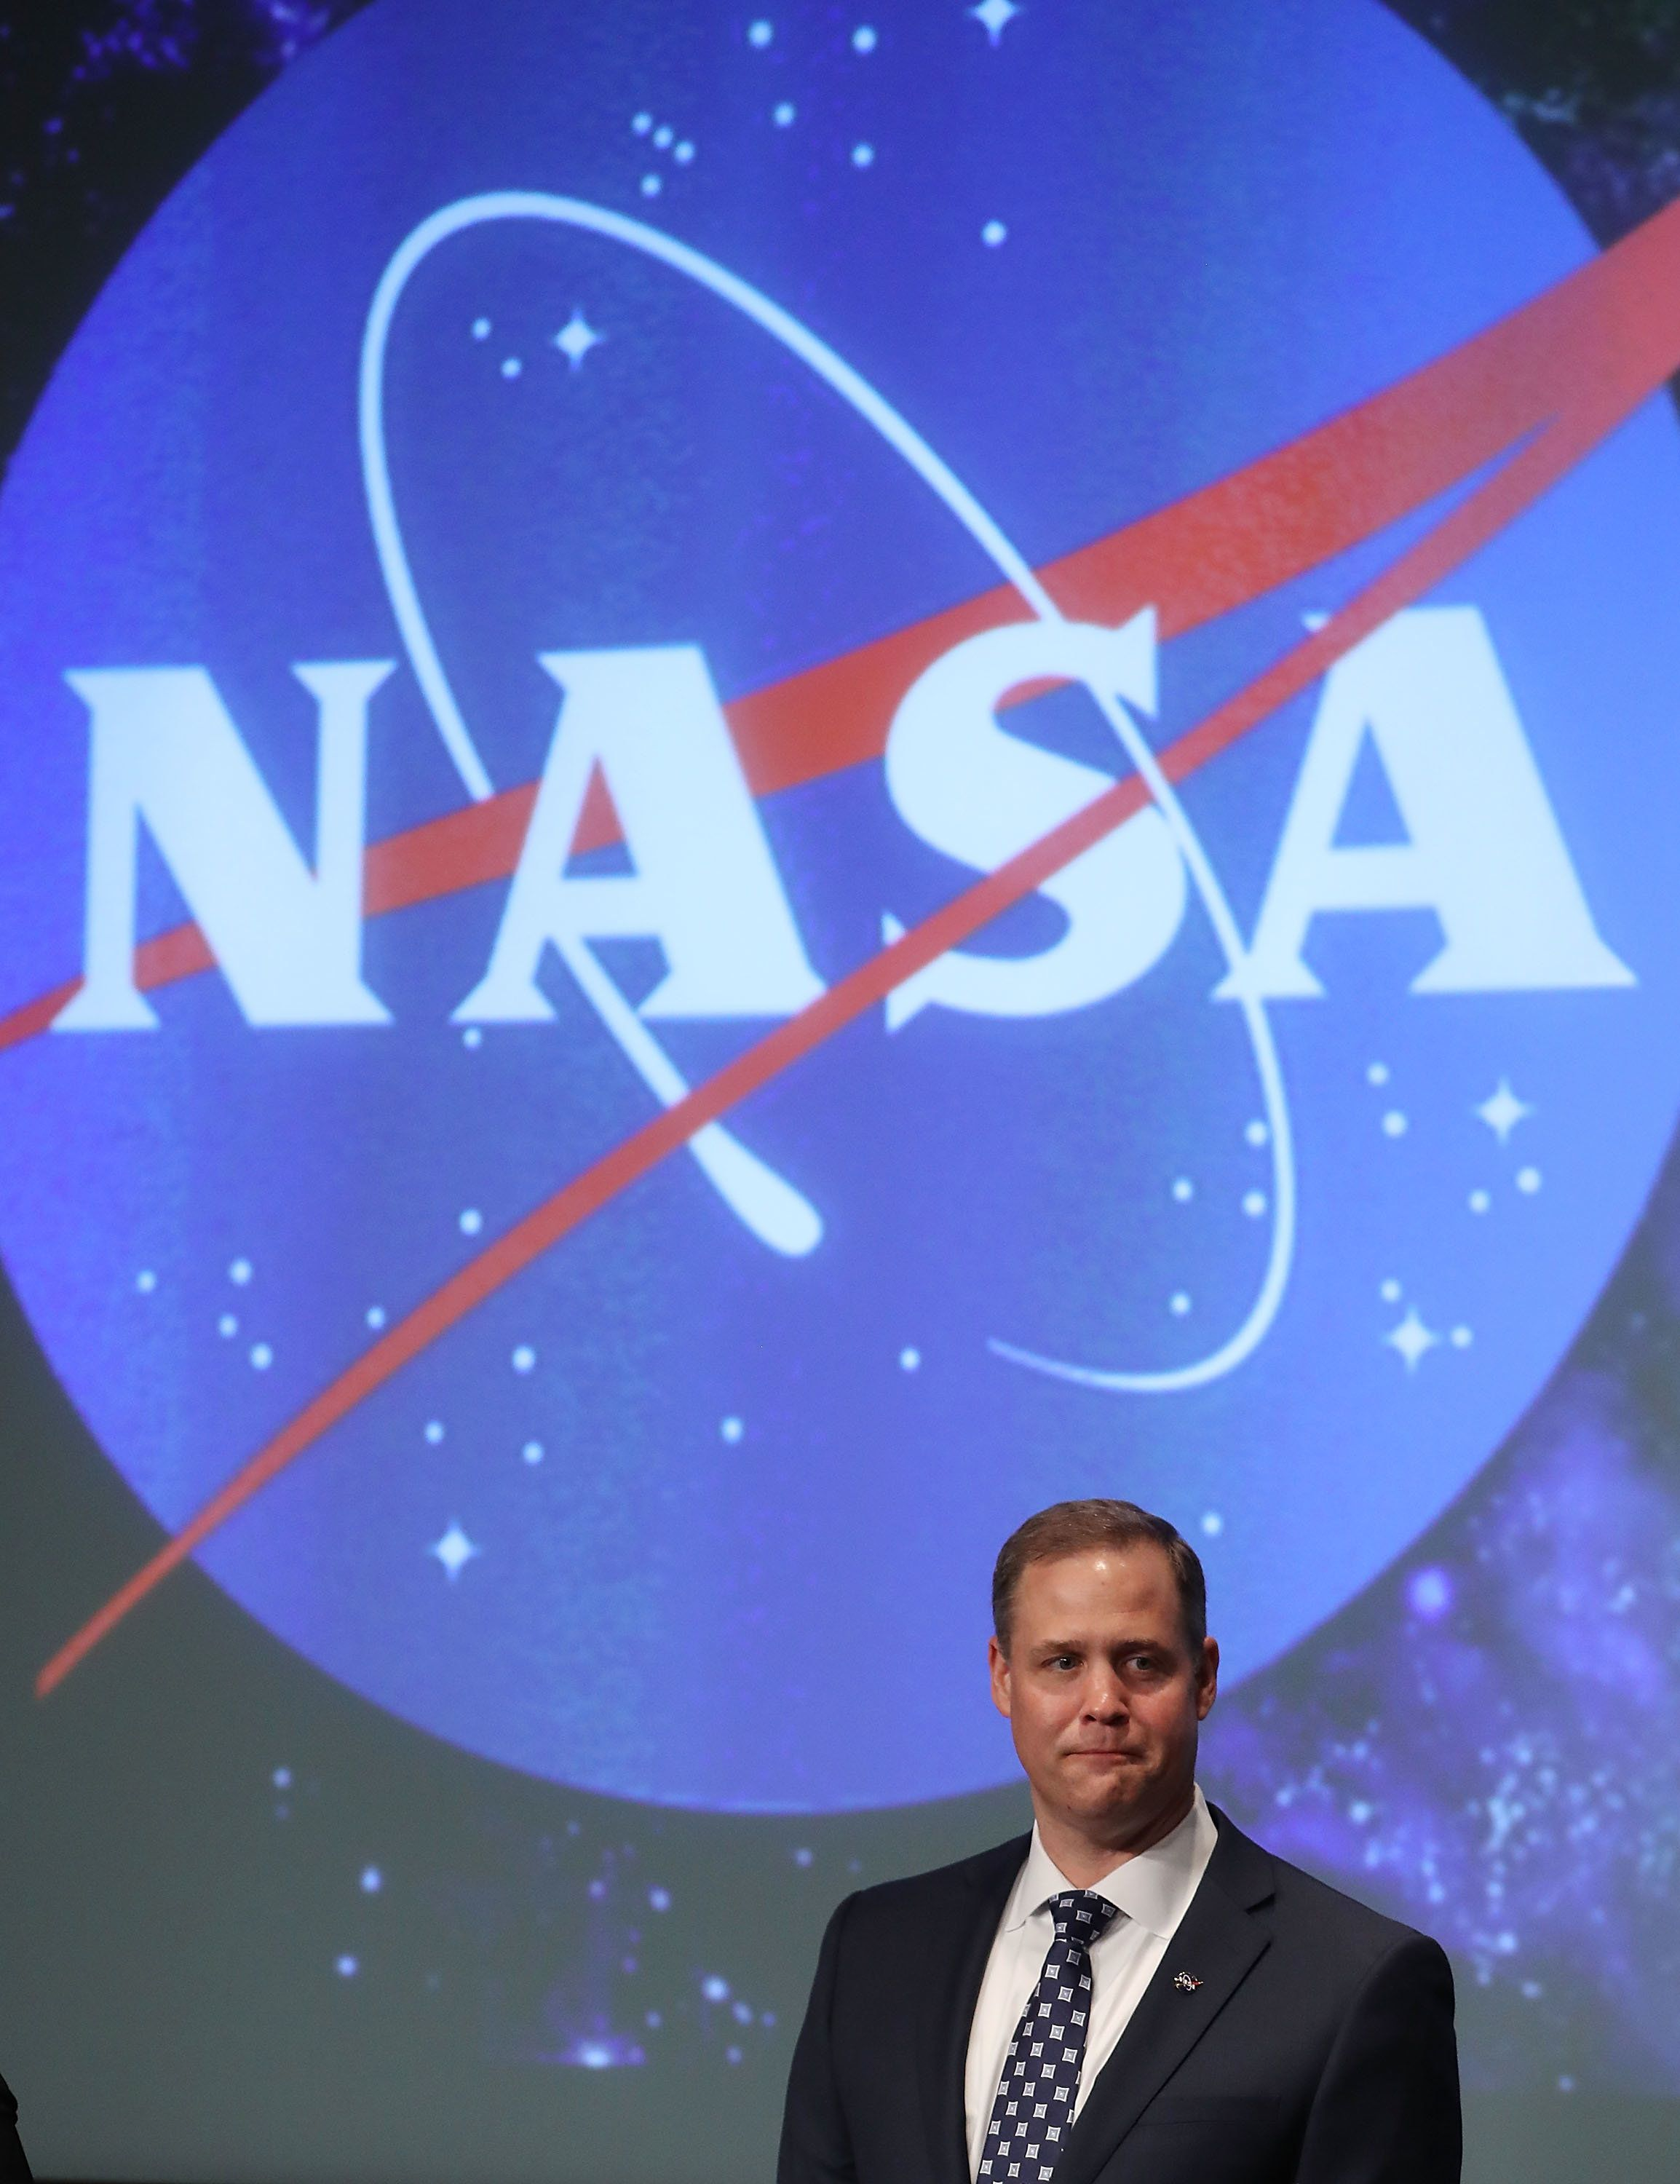 WASHINGTON, DC - APRIL 23:  Jim Bridenstine speaks after he was sworn in as NASA's new administrator by Vice President Mike Pence, during a ceremonial swearing in, at NASA Headquarters on April 23, 2018 in Washington, DC.  (Photo by Mark Wilson/Getty Images)